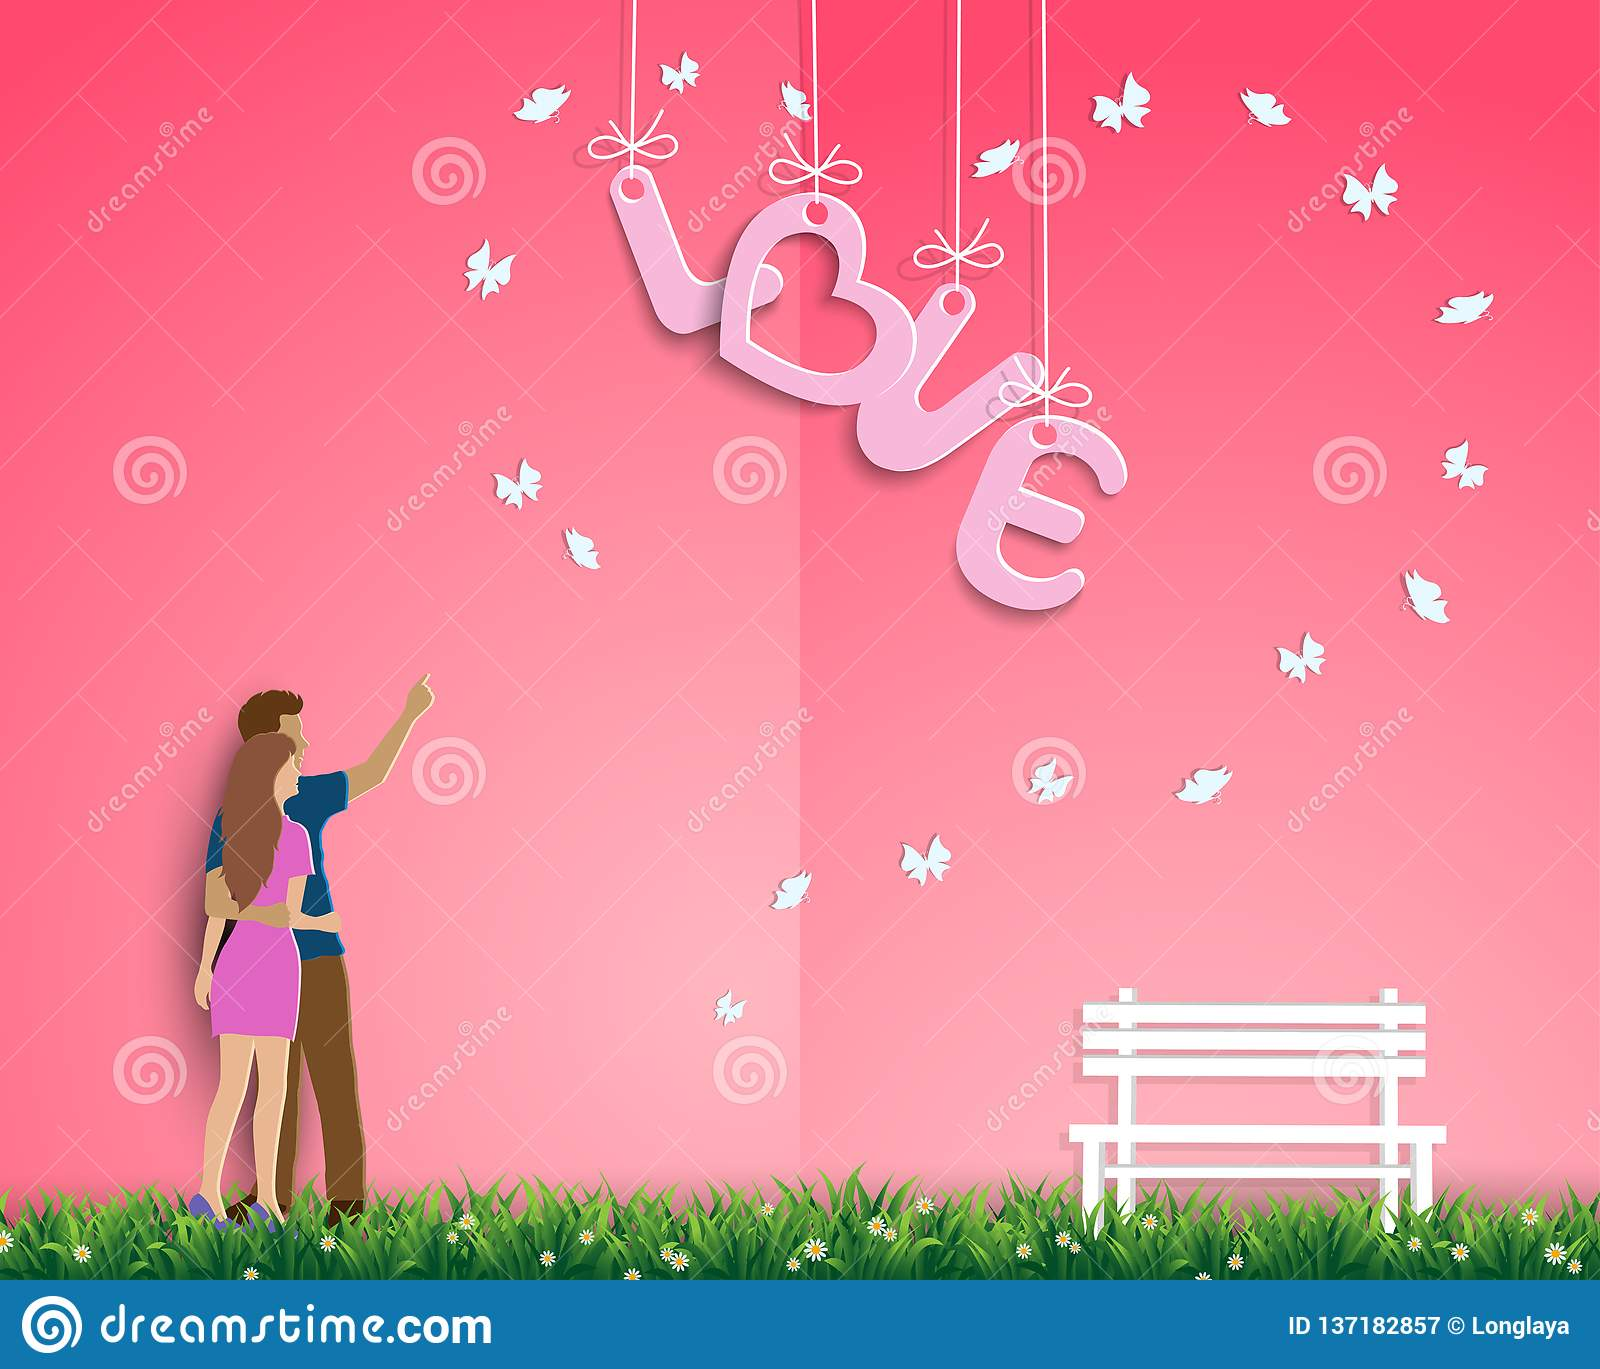 Paper art design with couple standing in the garden of love,for happy Valentine`s day,greeting card or poster